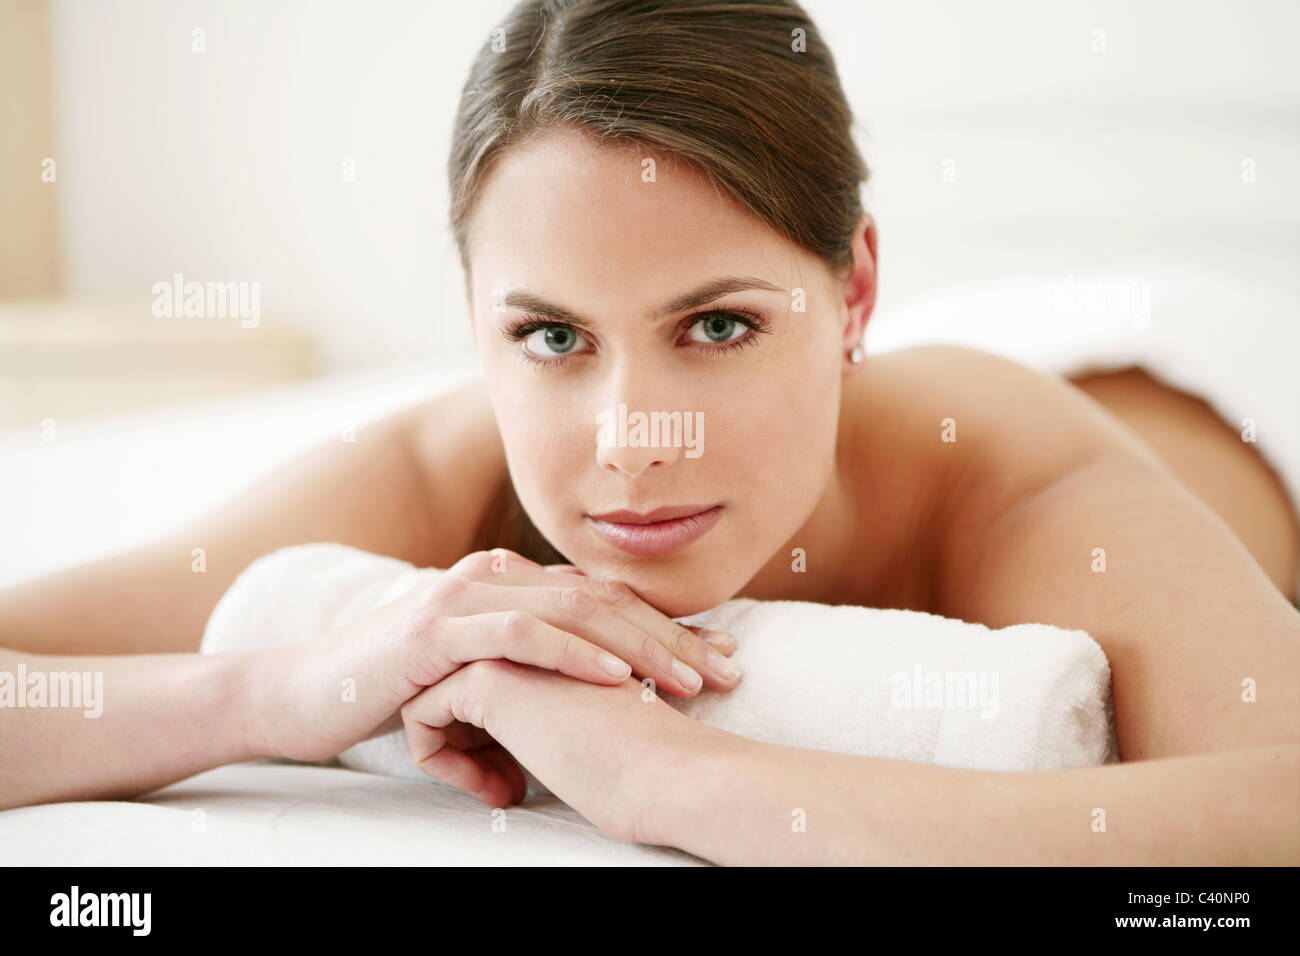 young, woman, lying, tender, gentle, bed, spa, model, adult, caucasian, female, health, beauty, care, 20-25 years, - Stock Image